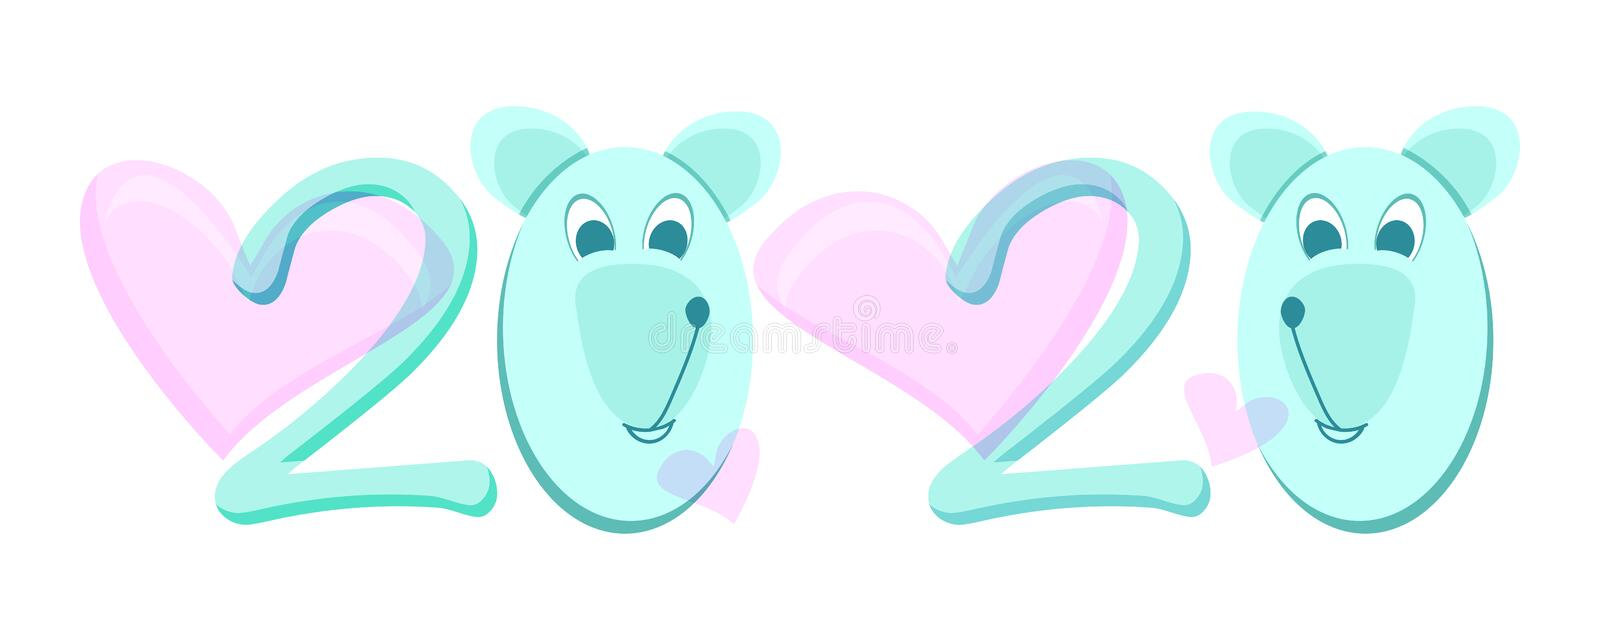 2020 the year of mouse. Mascot of the new year. stock illustration